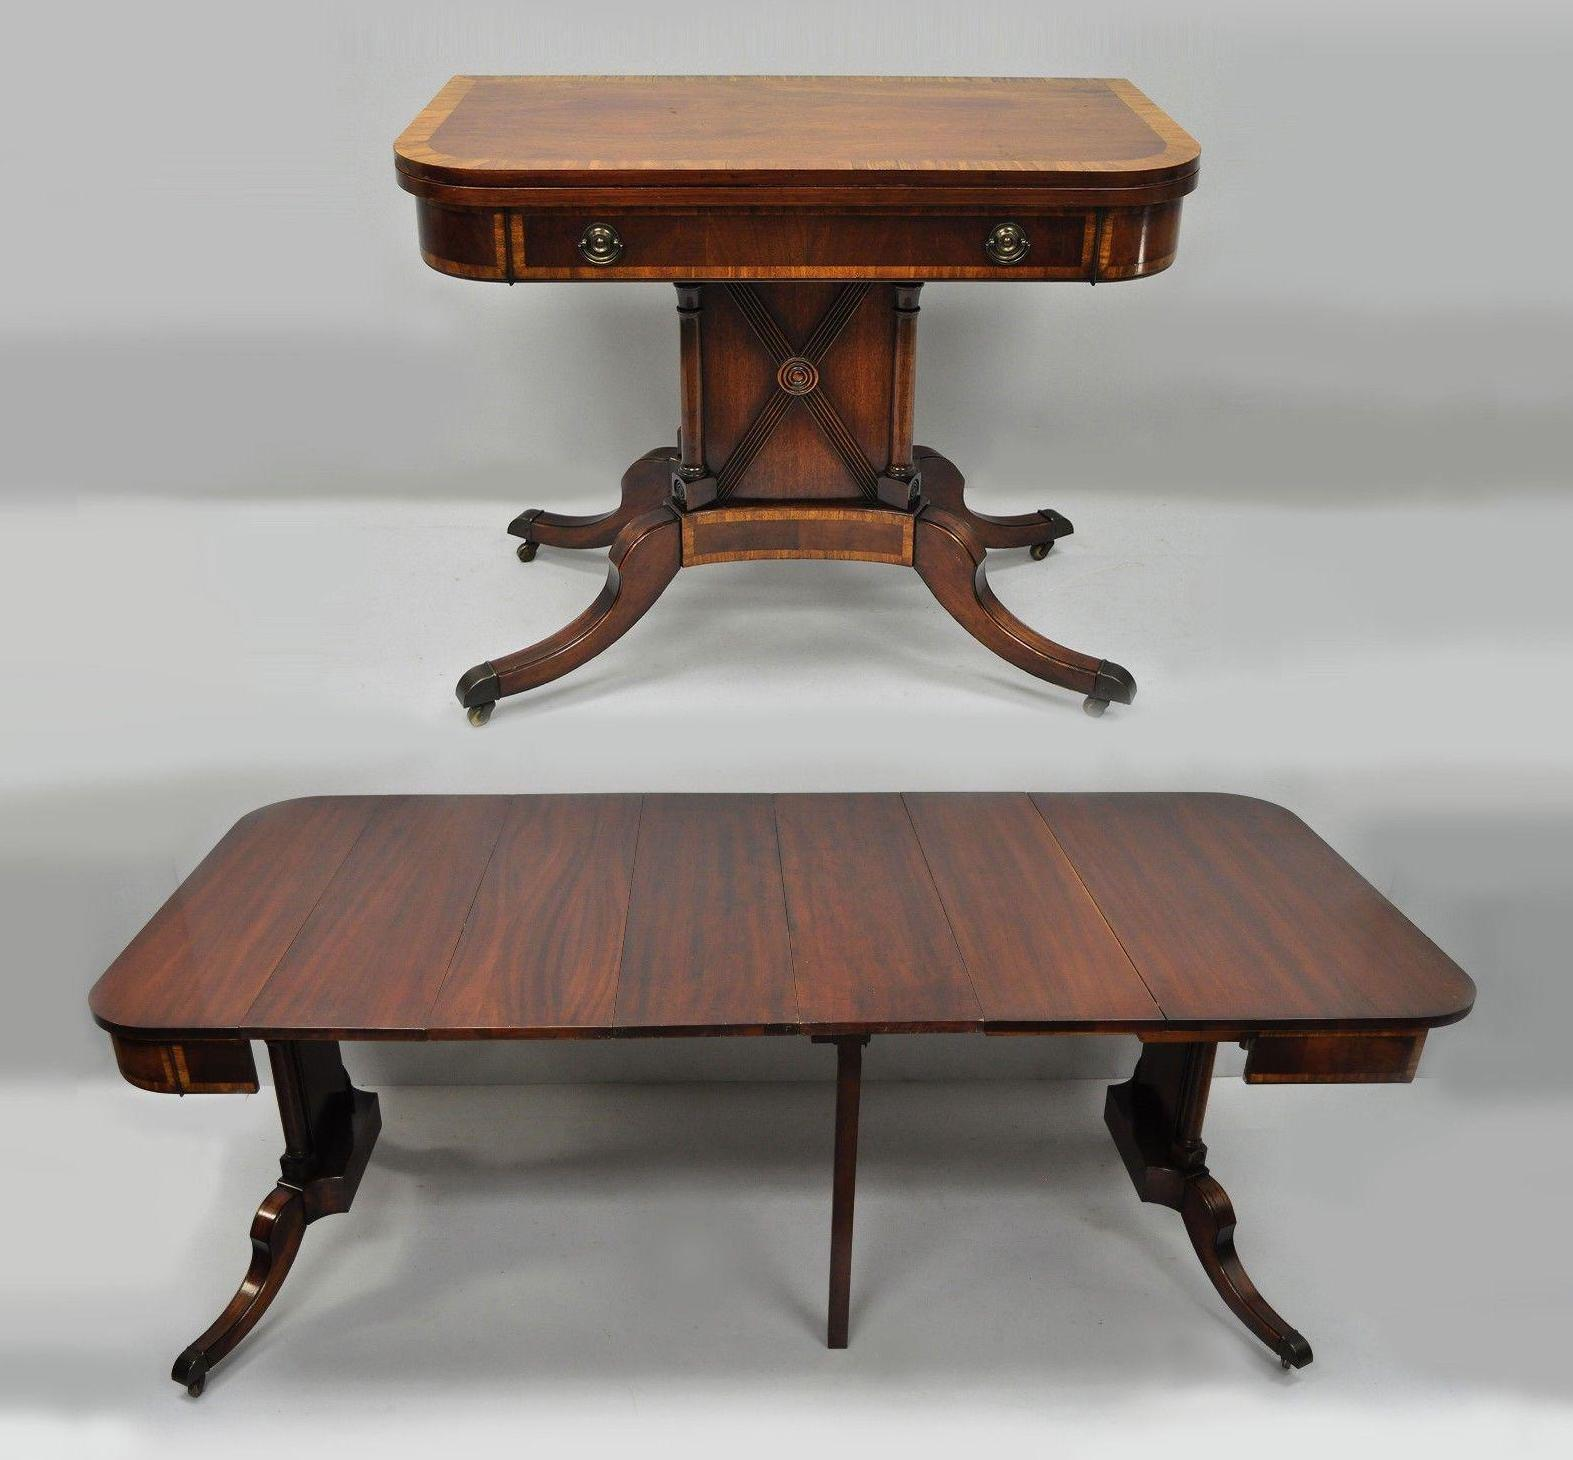 Antique Karges Banded Mahogany Regency Style Flip Top Game Table /  Extension Dining Table With 4